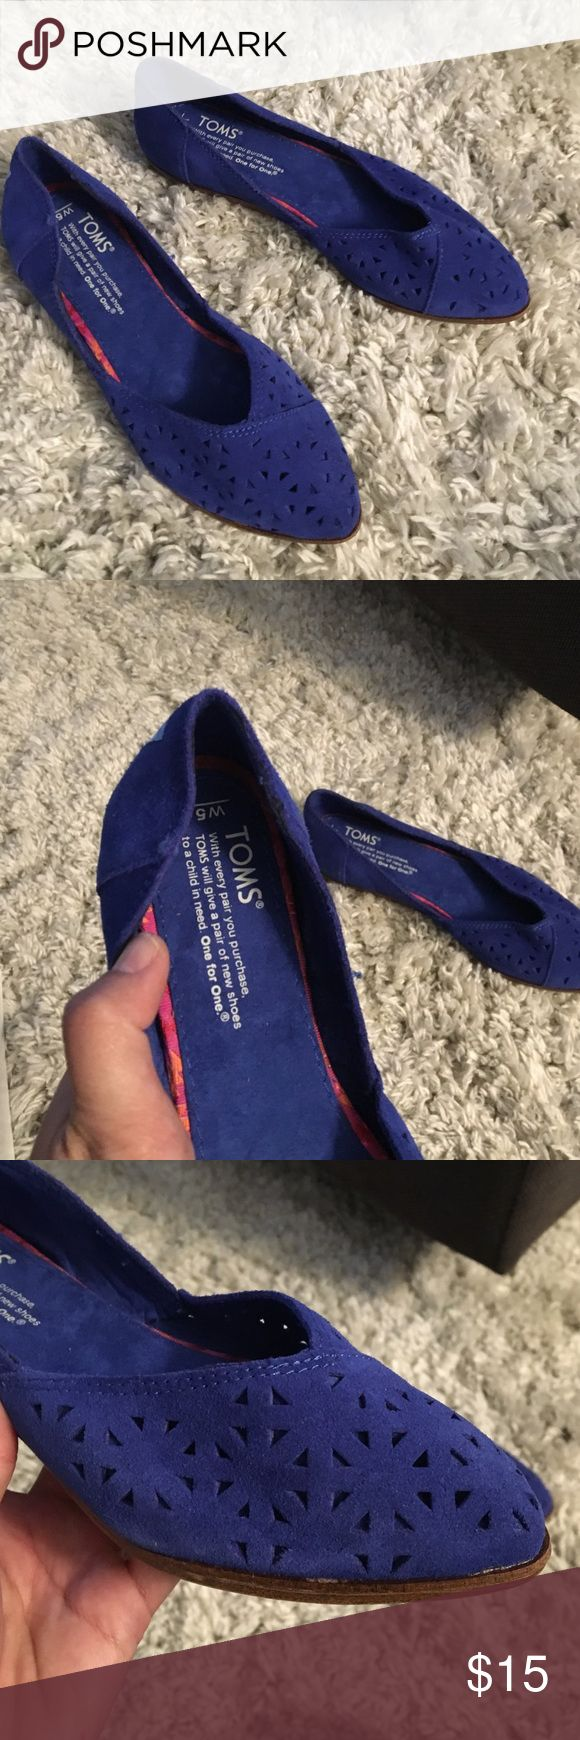 Toms women shoes Blue suede eyelet cutout. Size 5 women brand new. No box TOMS Shoes Flats & Loafers